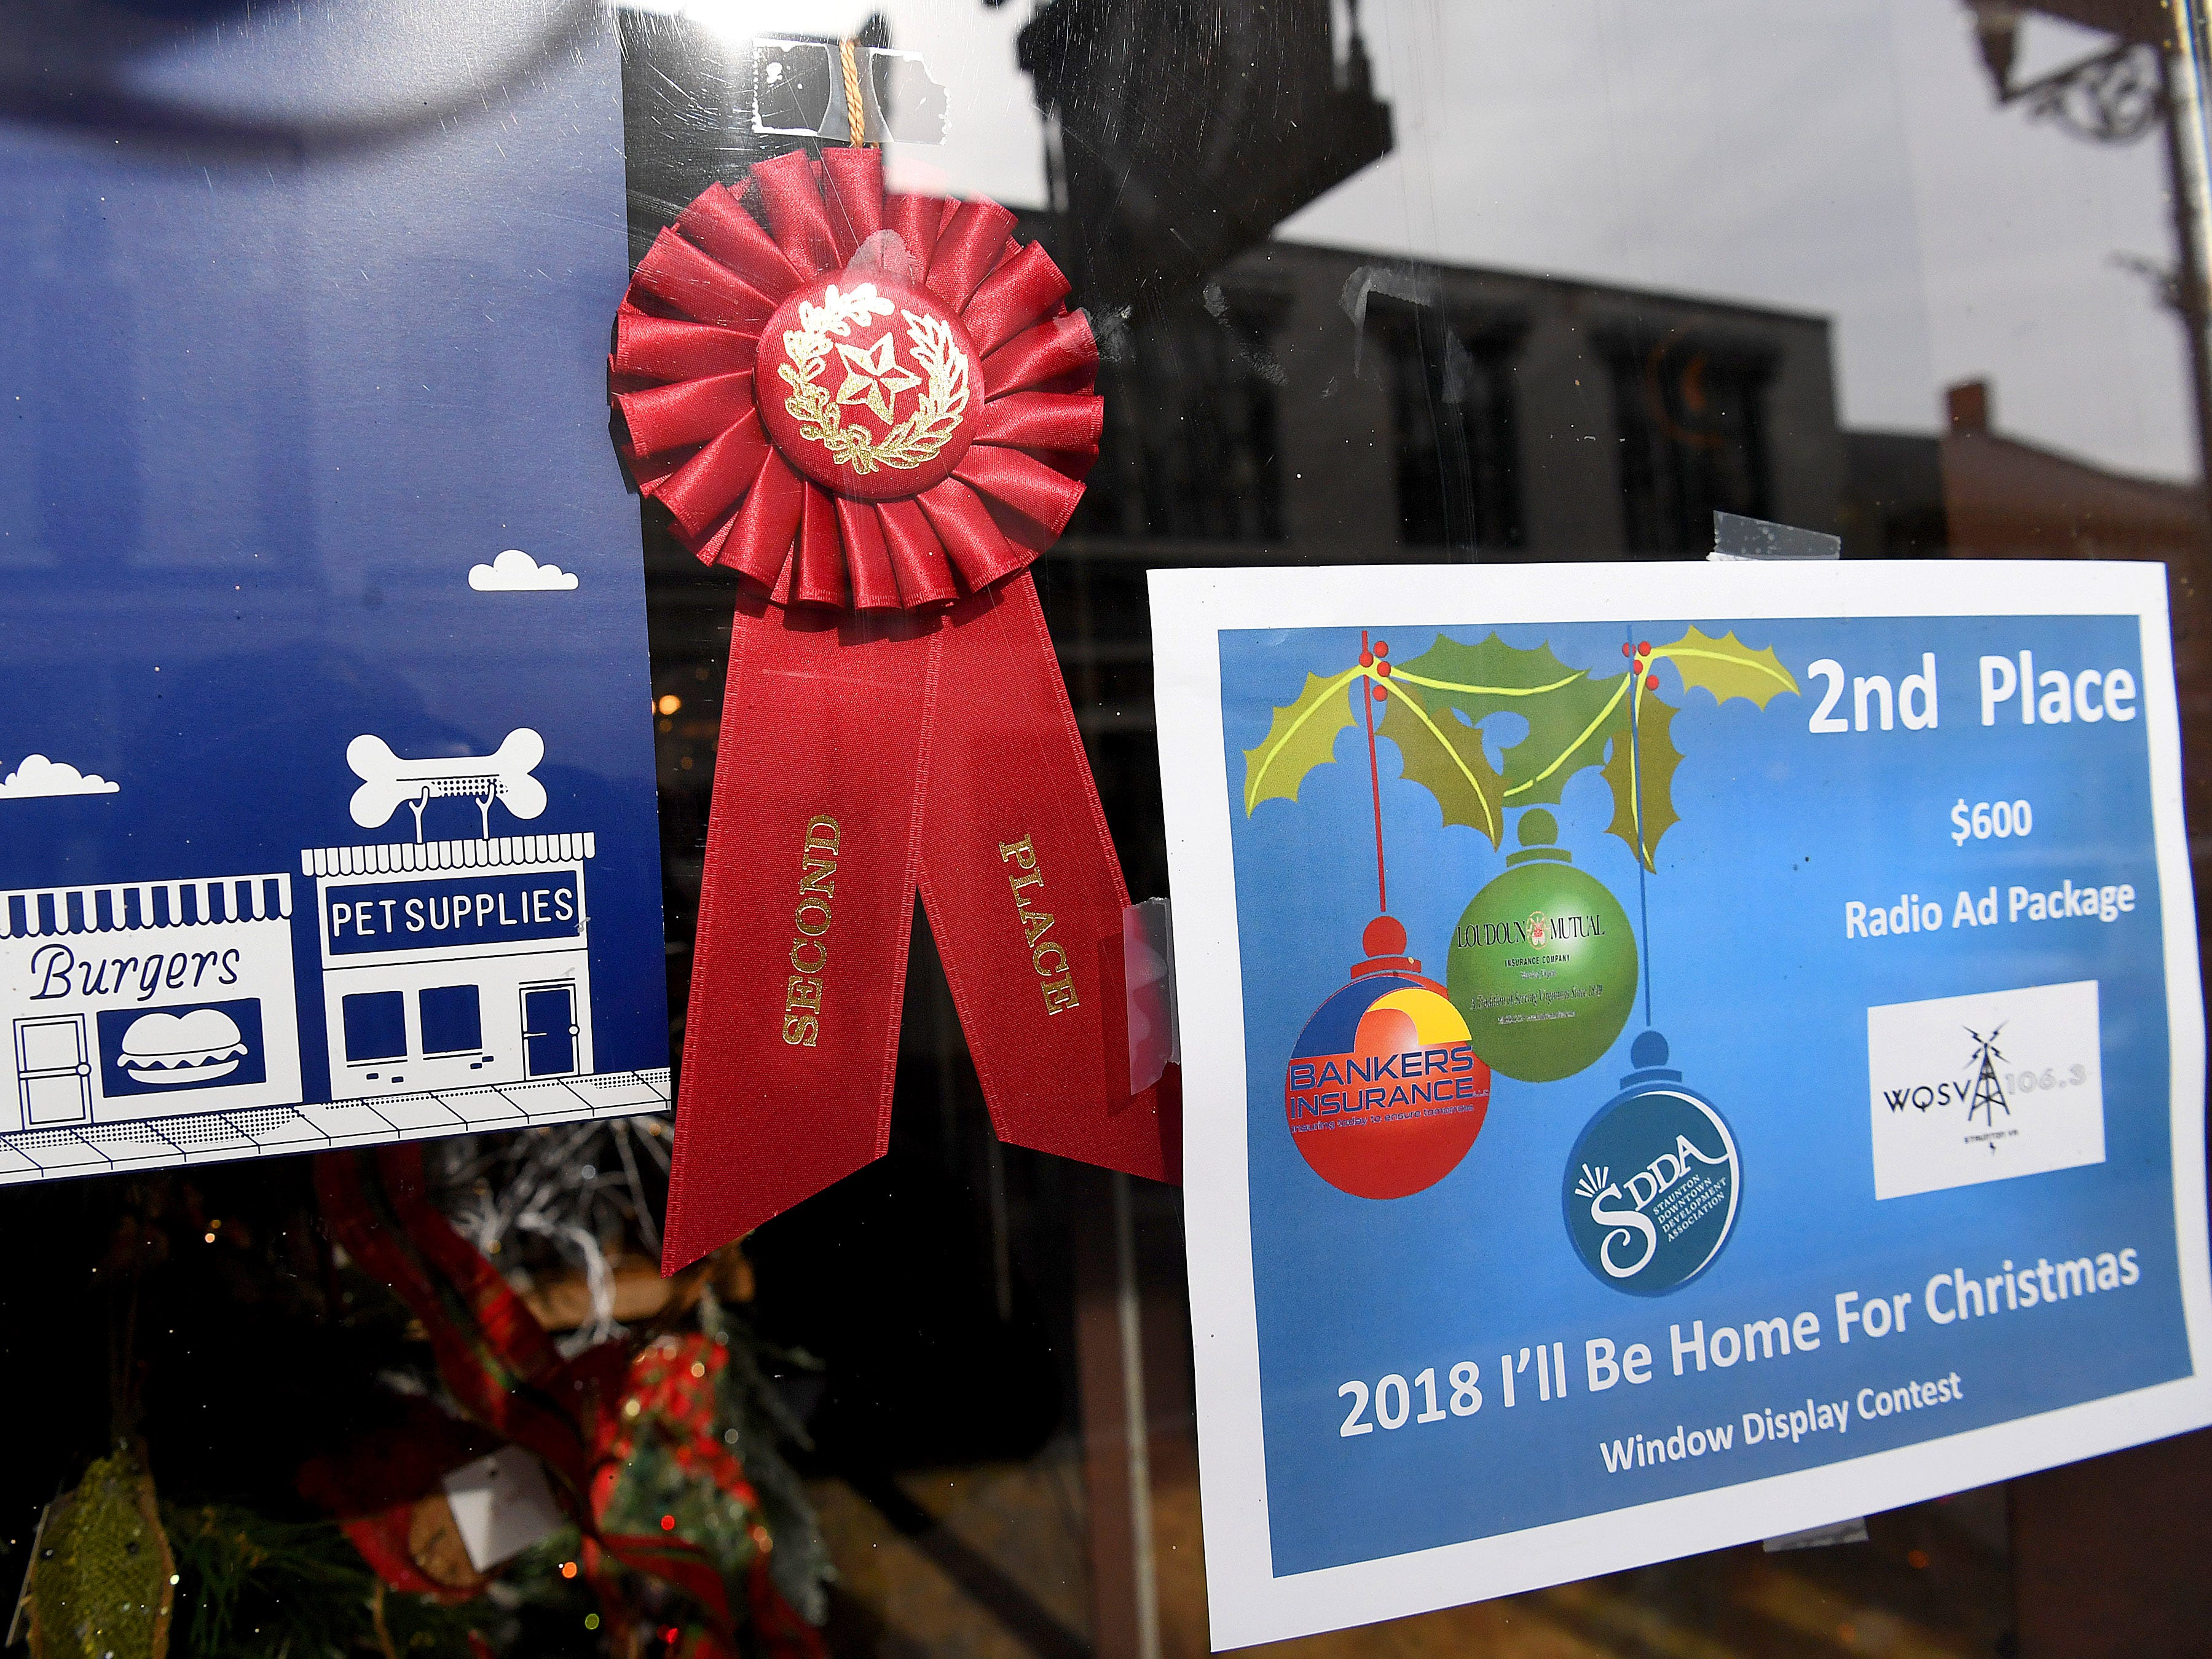 Cherish Every Moment's holiday window display placed second in Staunton Downtown Development Association's holiday storefront window display judging contest.